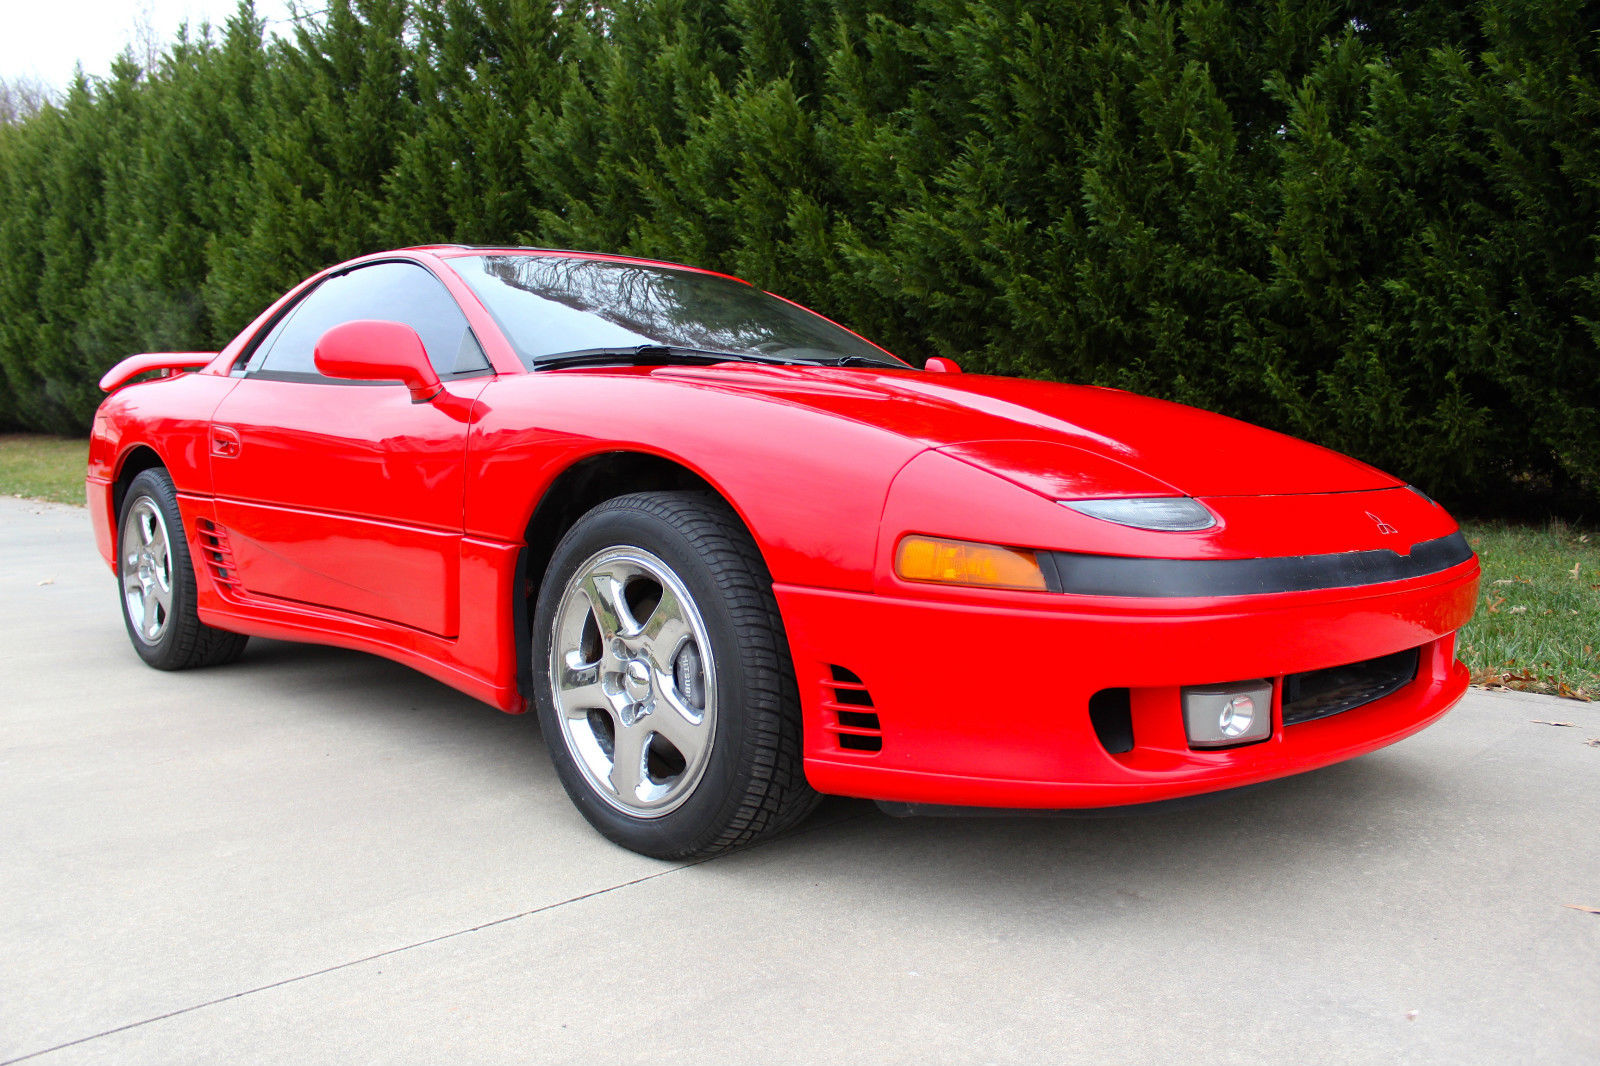 https://i2.wp.com/smclassiccars.com/uploads/postfotos/1993-red-mitsubishi-3000gt-vr4-in-very-good-condition-1.JPG